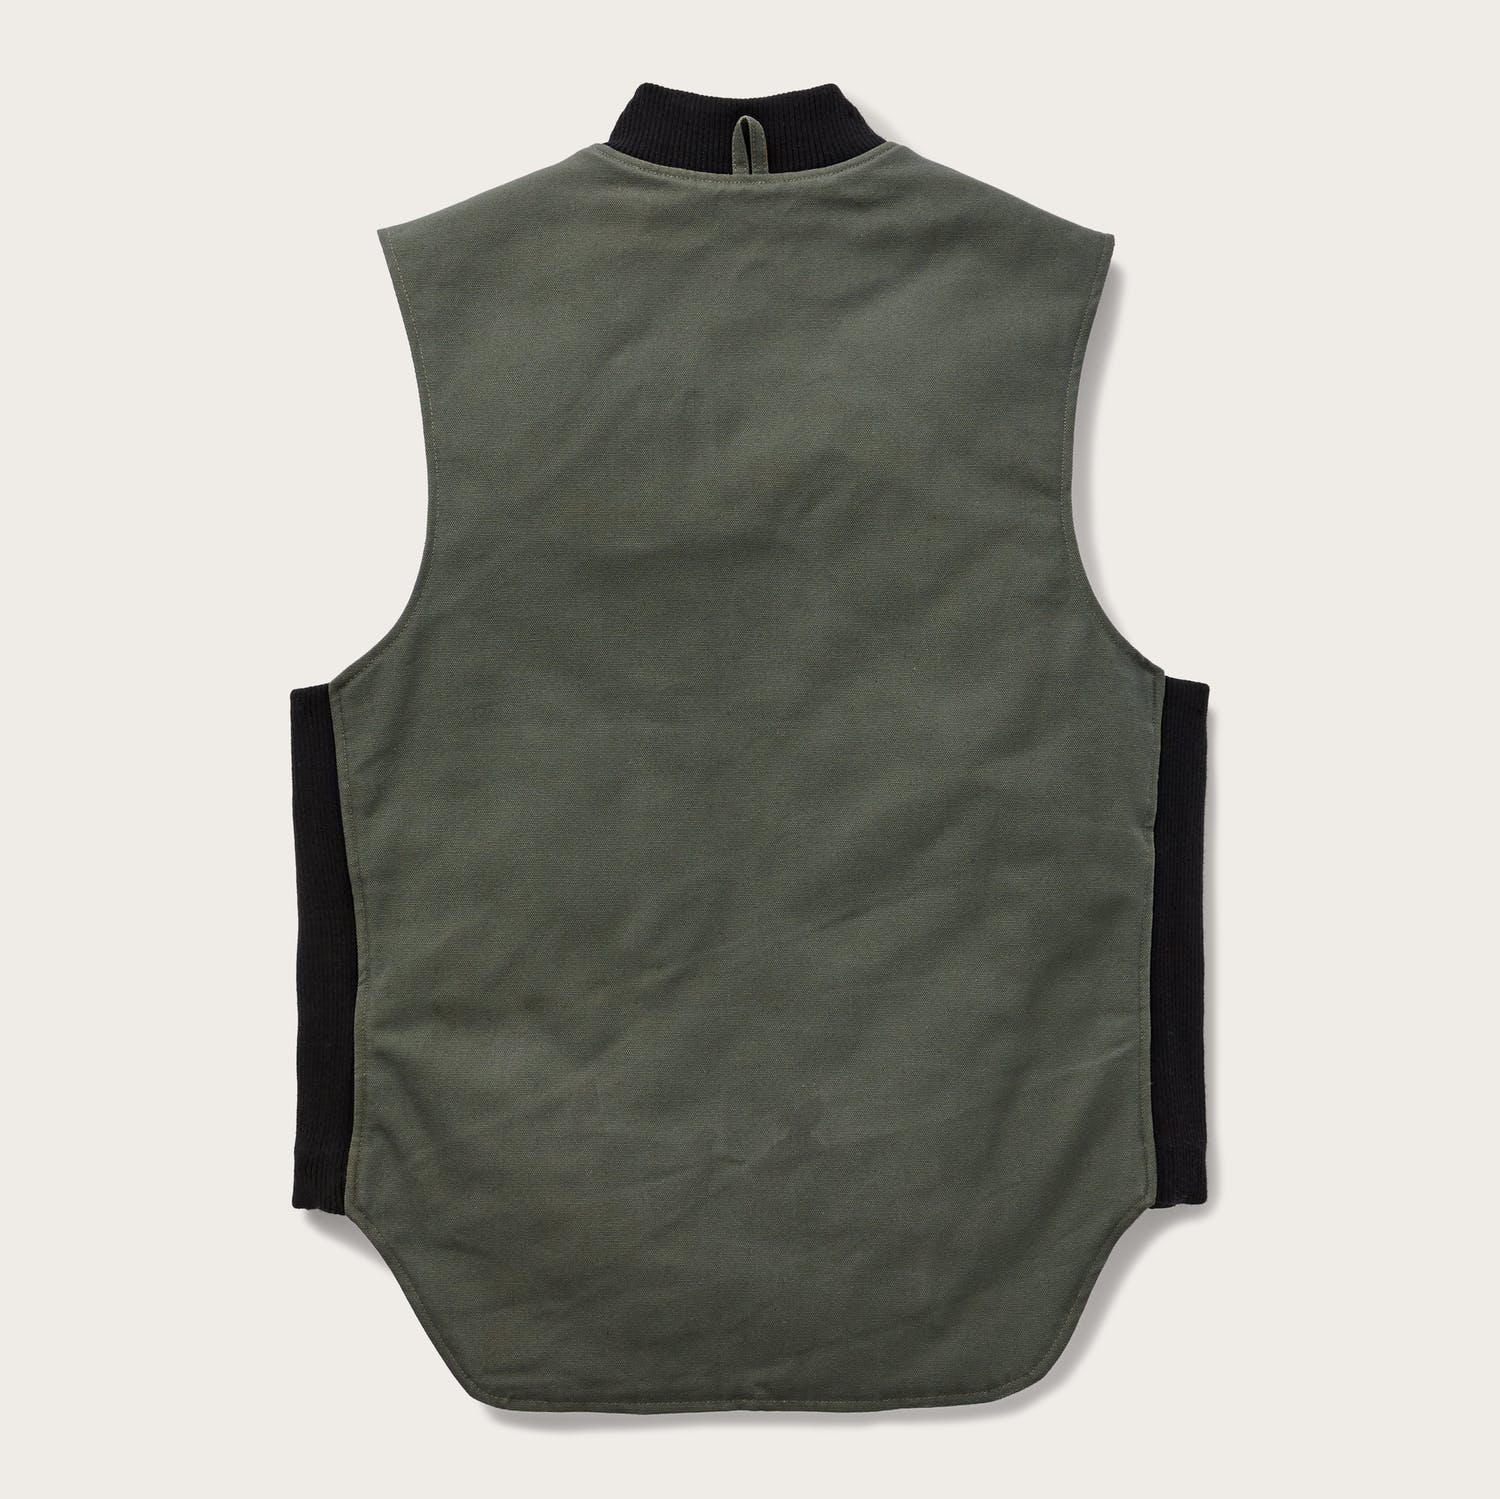 Filson - C.C.F. WORK VEST - Cannonball Green - The Populess Company